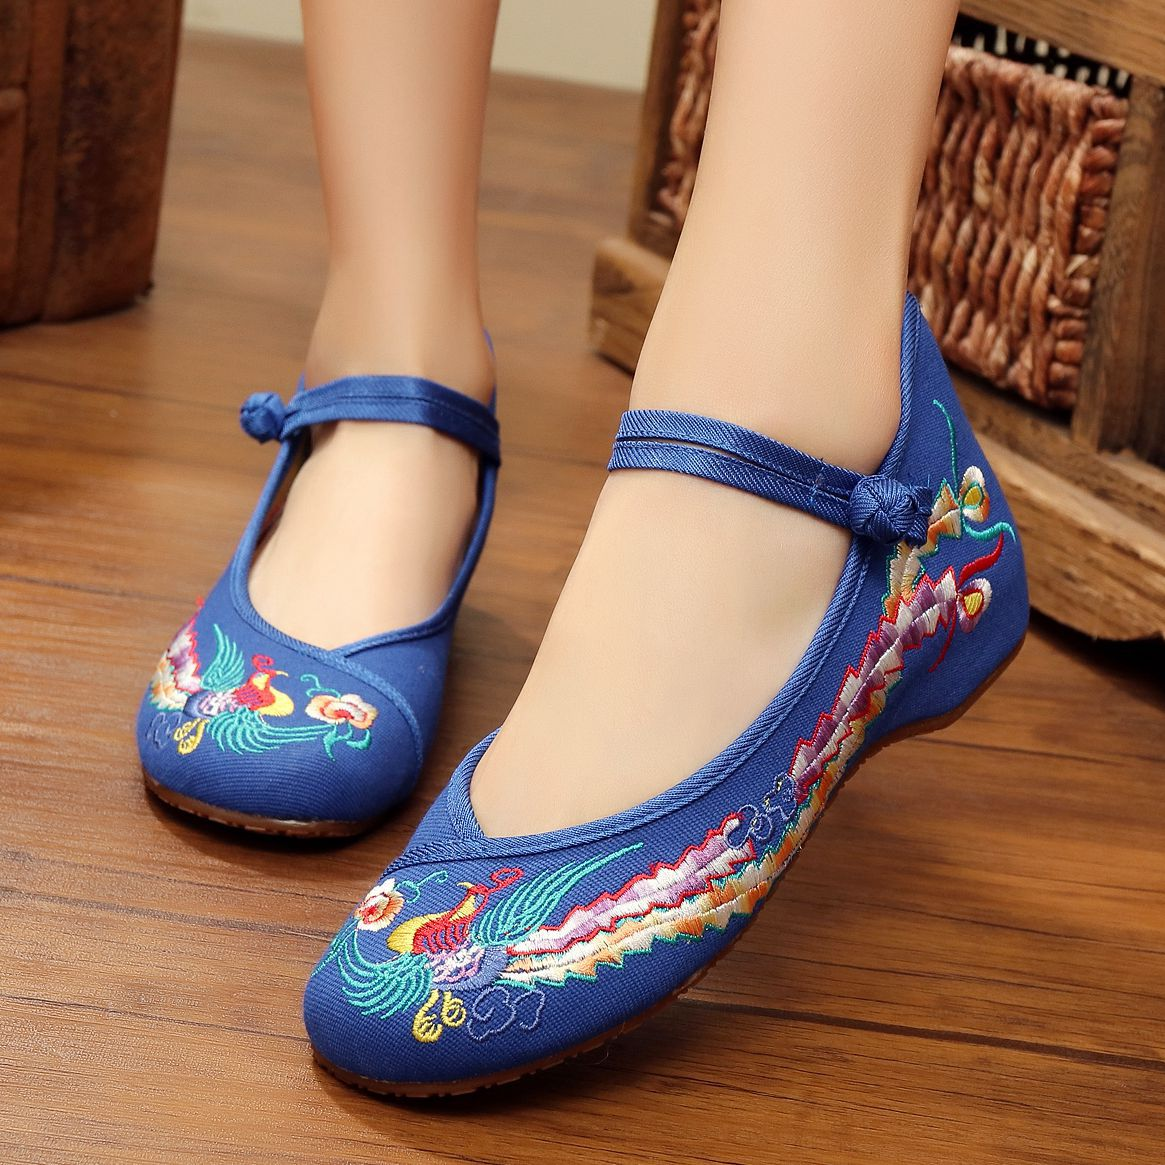 Fashion Women Shoes Old Beijing Mary Jane Flats With Casual Shoes Chinese Style Embroidered Cloth shoes woman Plus Size 057 peacock embroidery women shoes old peking mary jane flat heel denim flats soft sole women dance casual shoes height increase